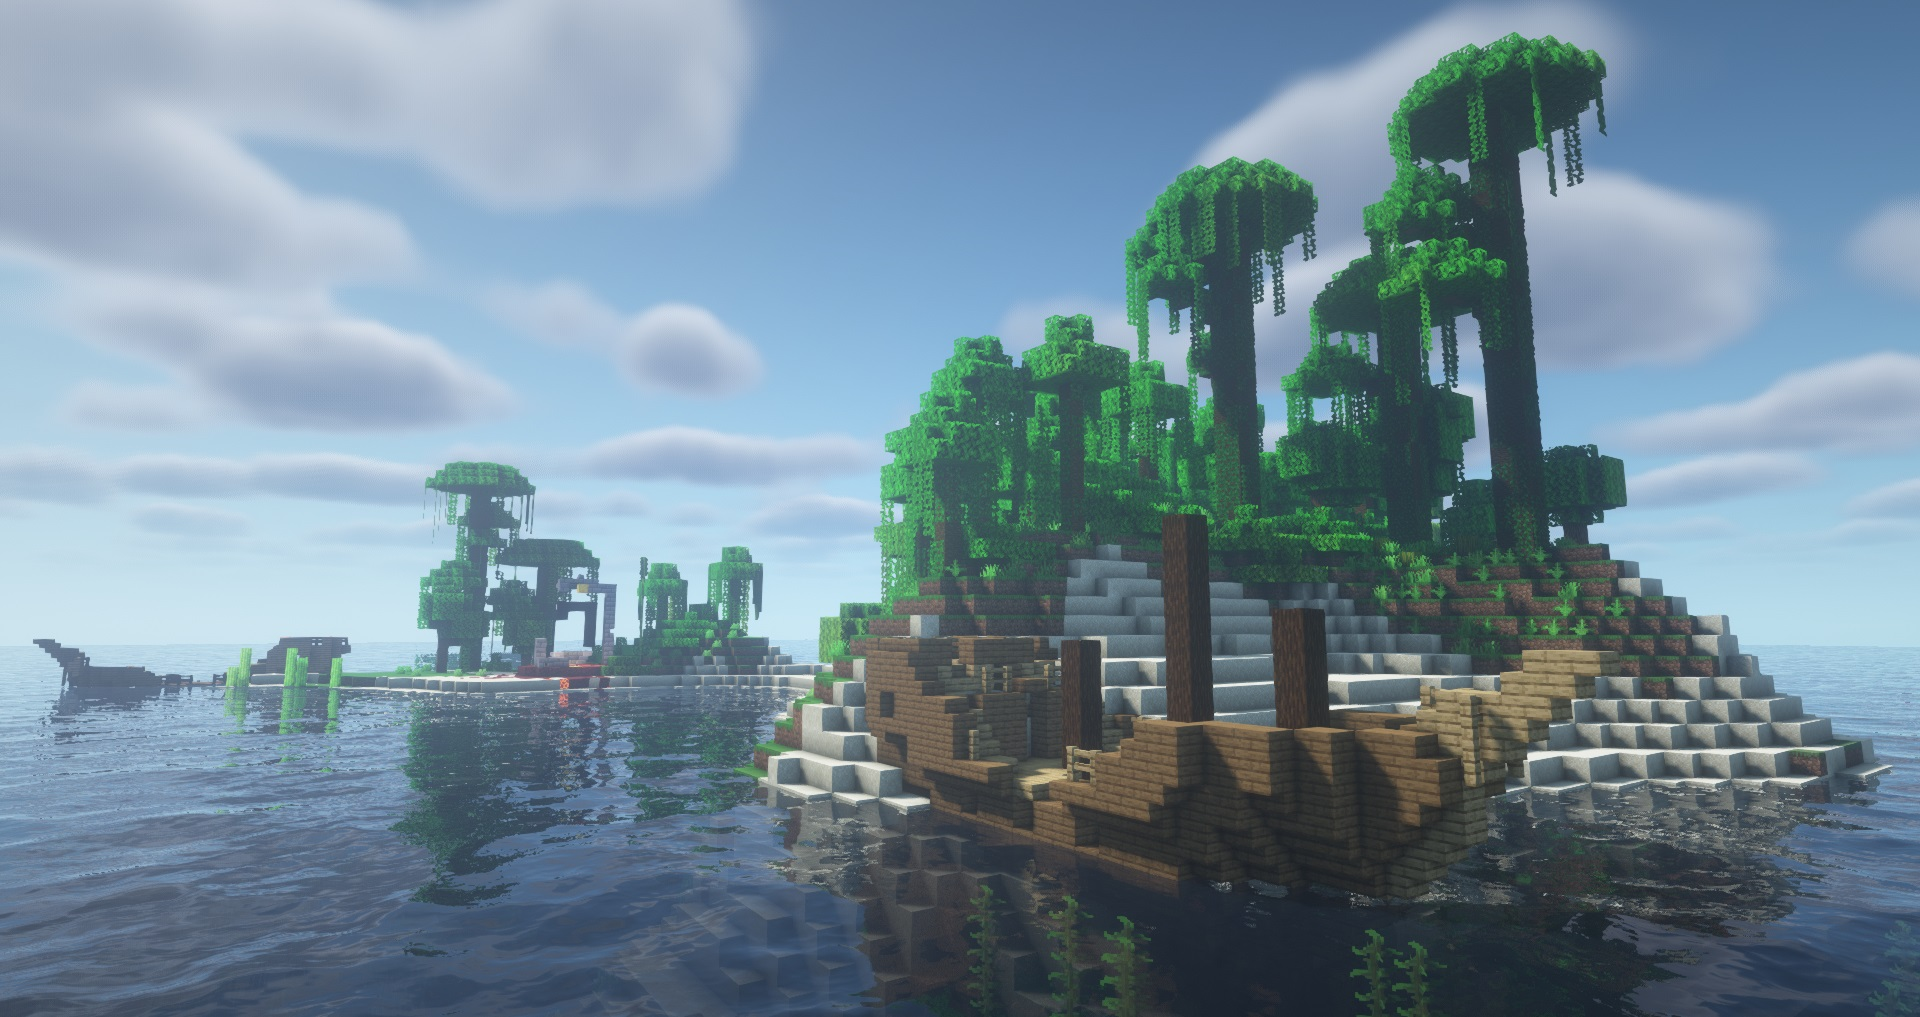 Minecraft seeds - Double shipwreck castaway - A small jungle island with two wrecked ships on its beaches and a ruined nether portal